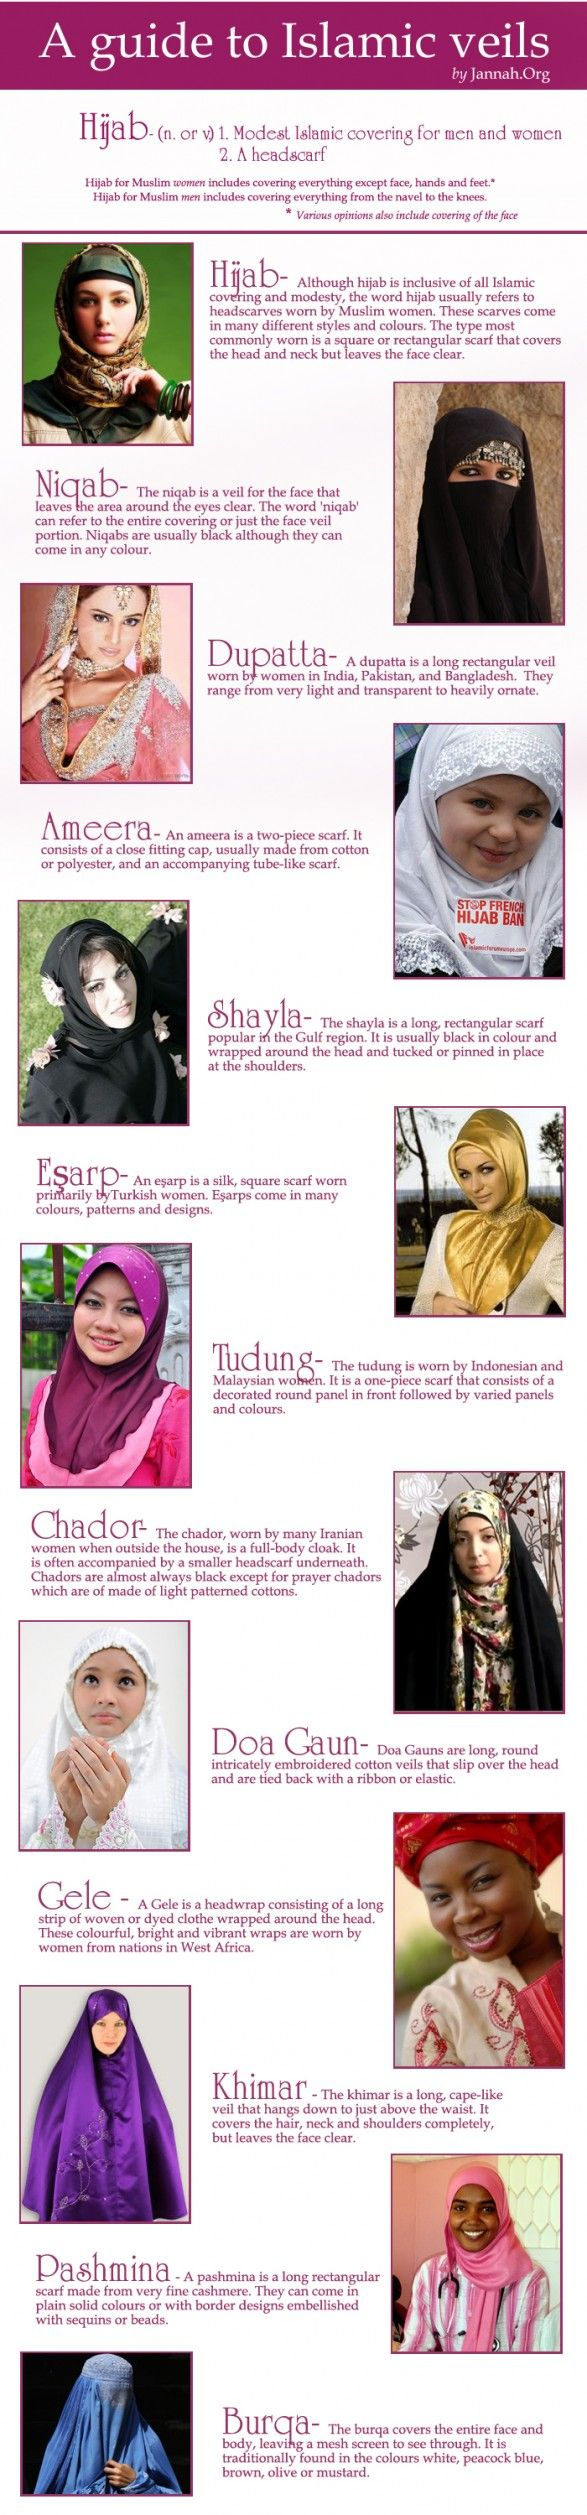 A Guide to Muslim Head Coverings